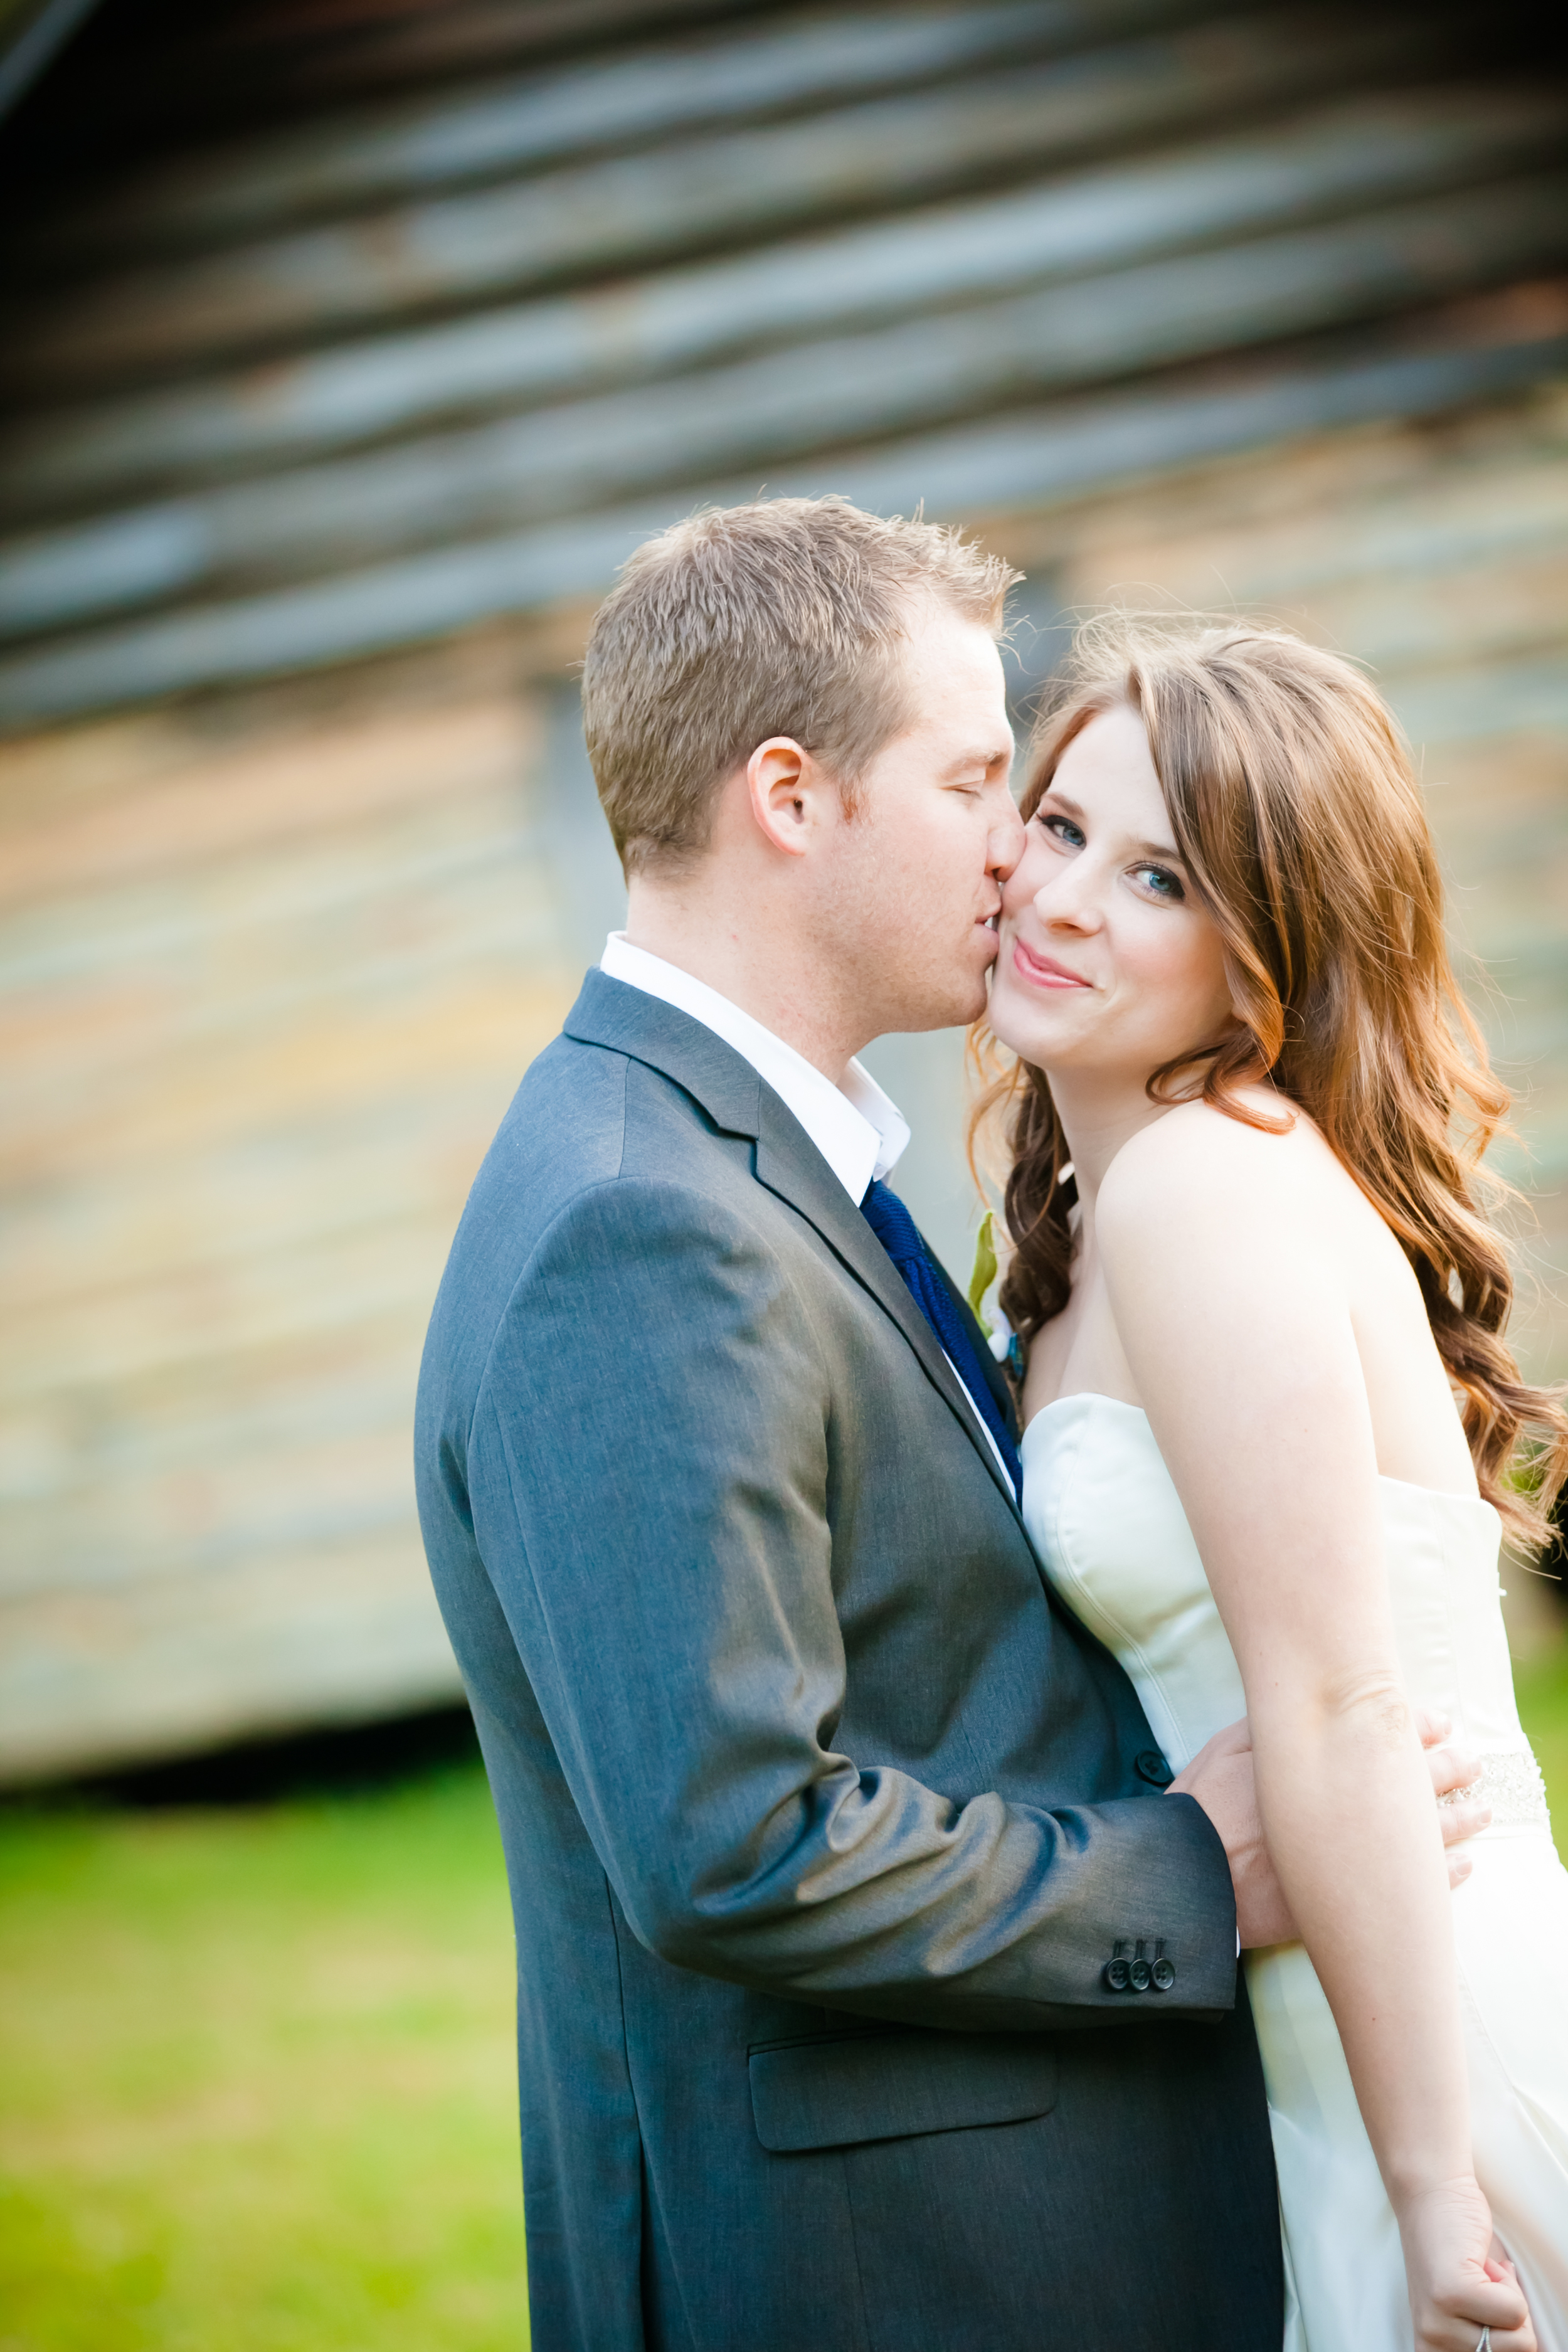 richard barlow photography - Encore Sessions & Wedding Photography in North Carolina